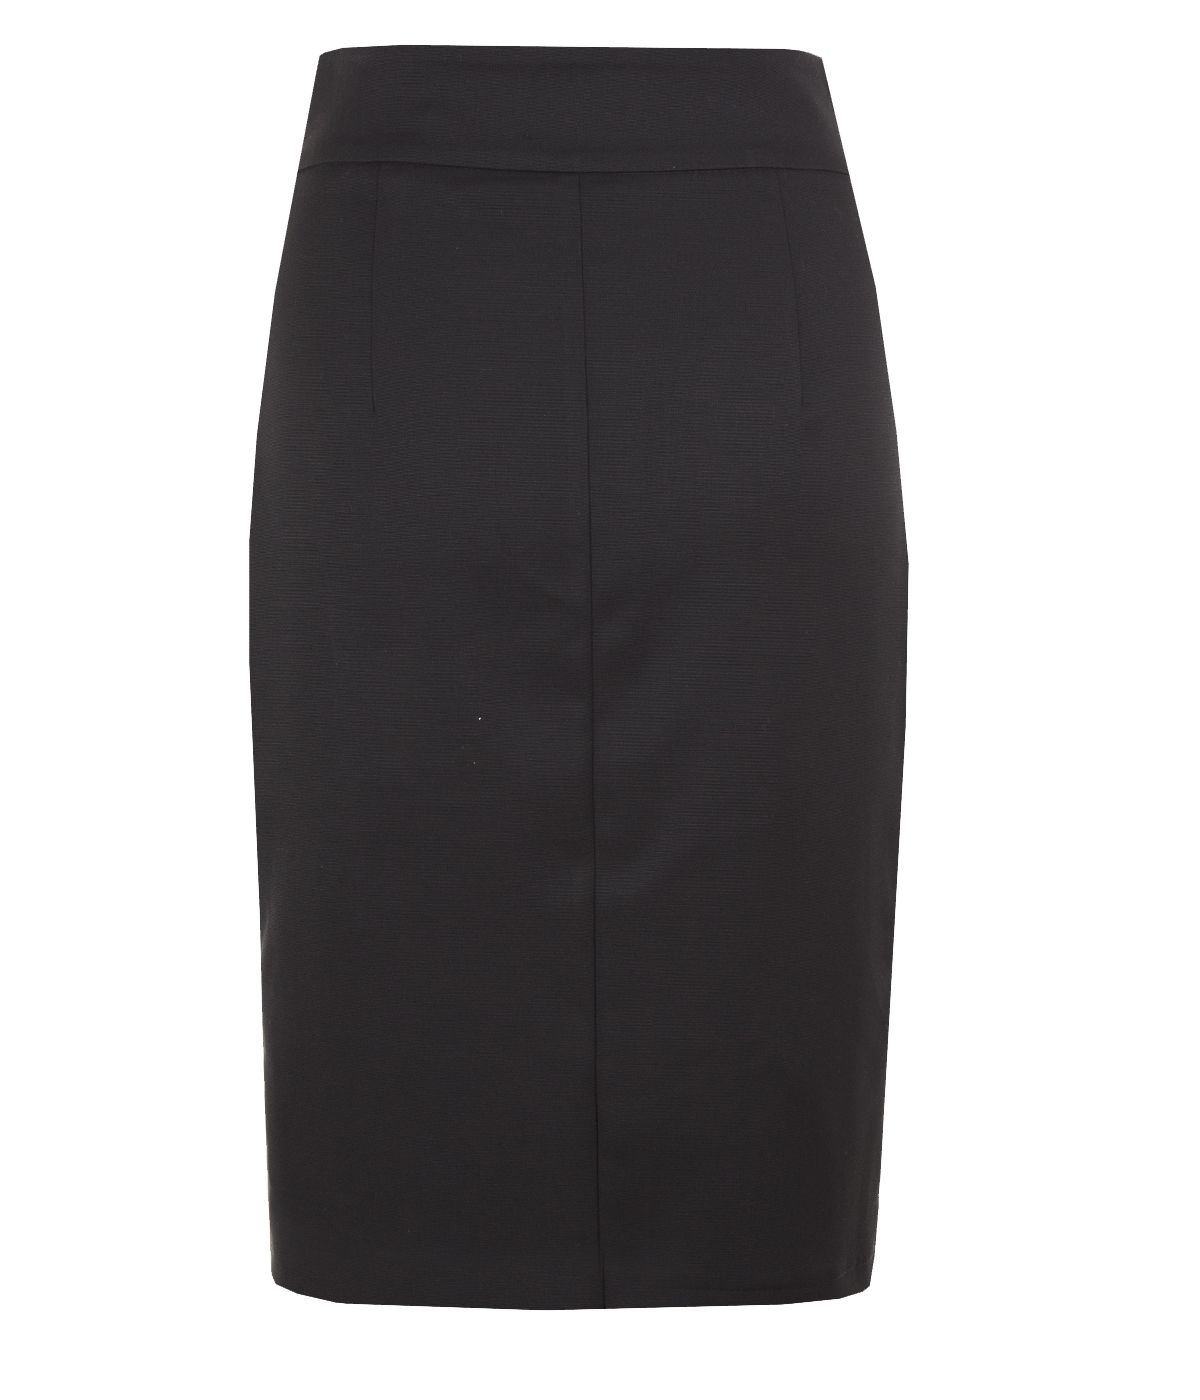 Skirt with asymmetrical zip closure, with rayon and viscose 1